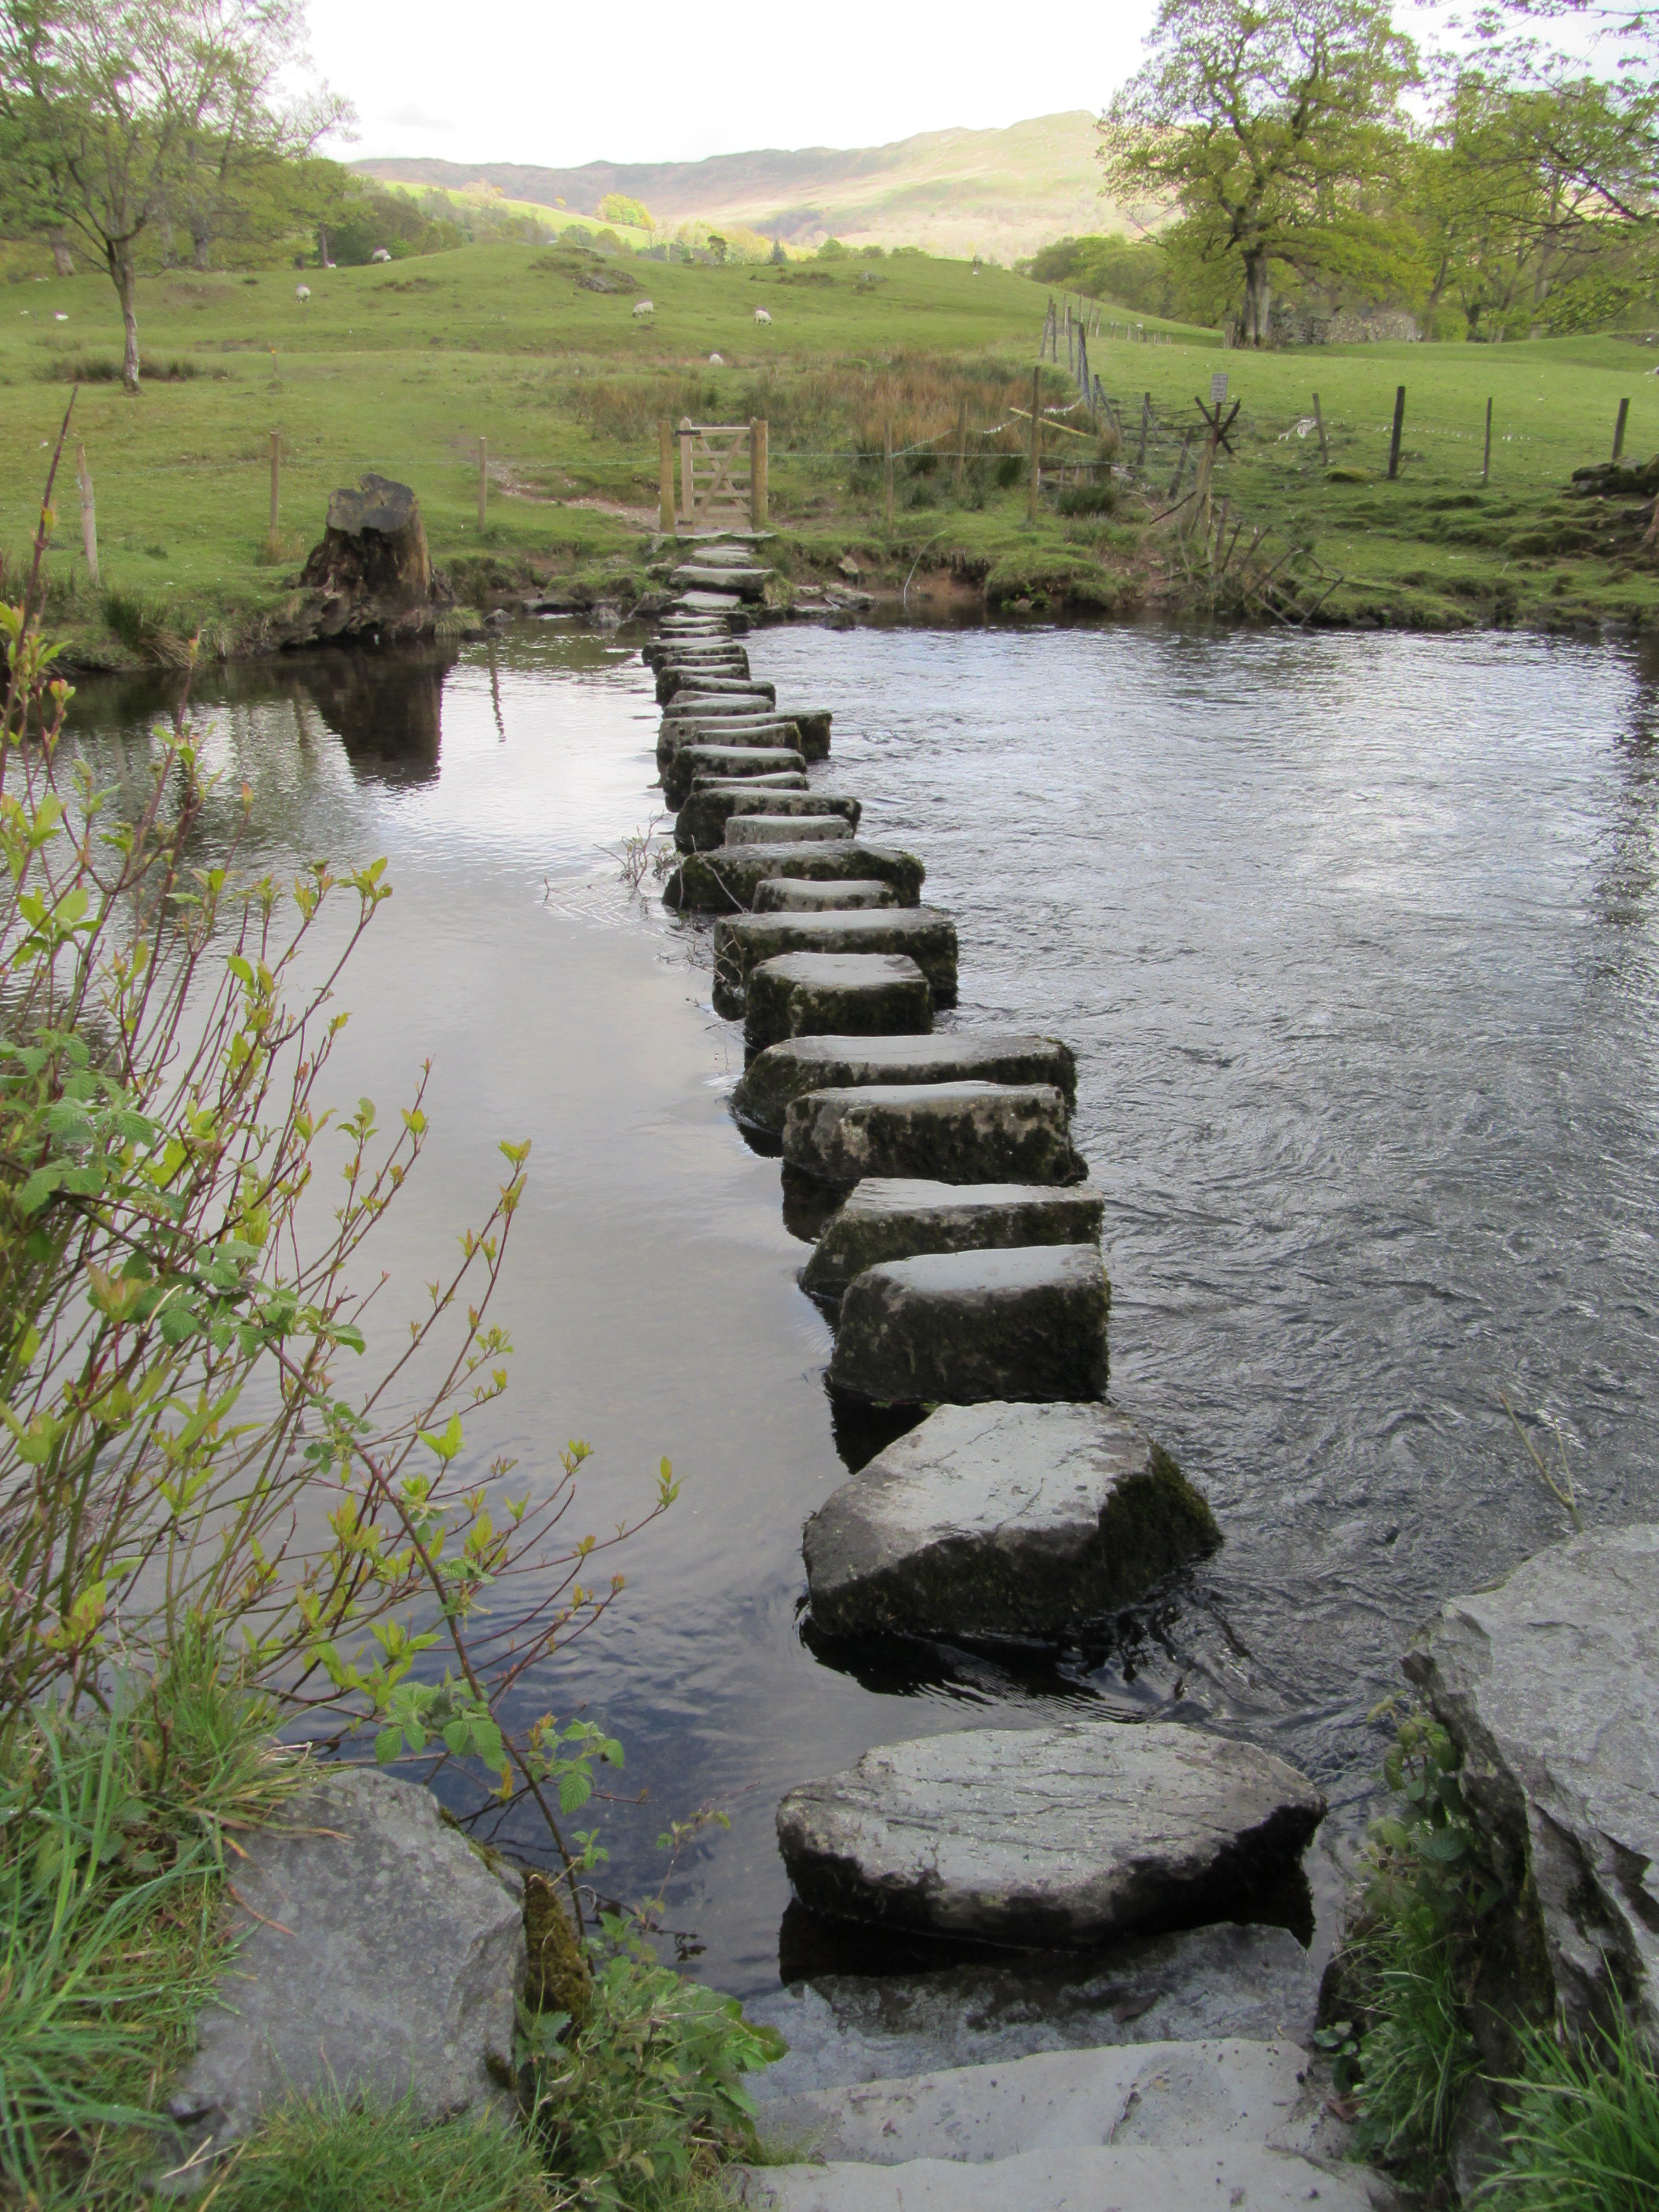 An Overview of Stepping stones